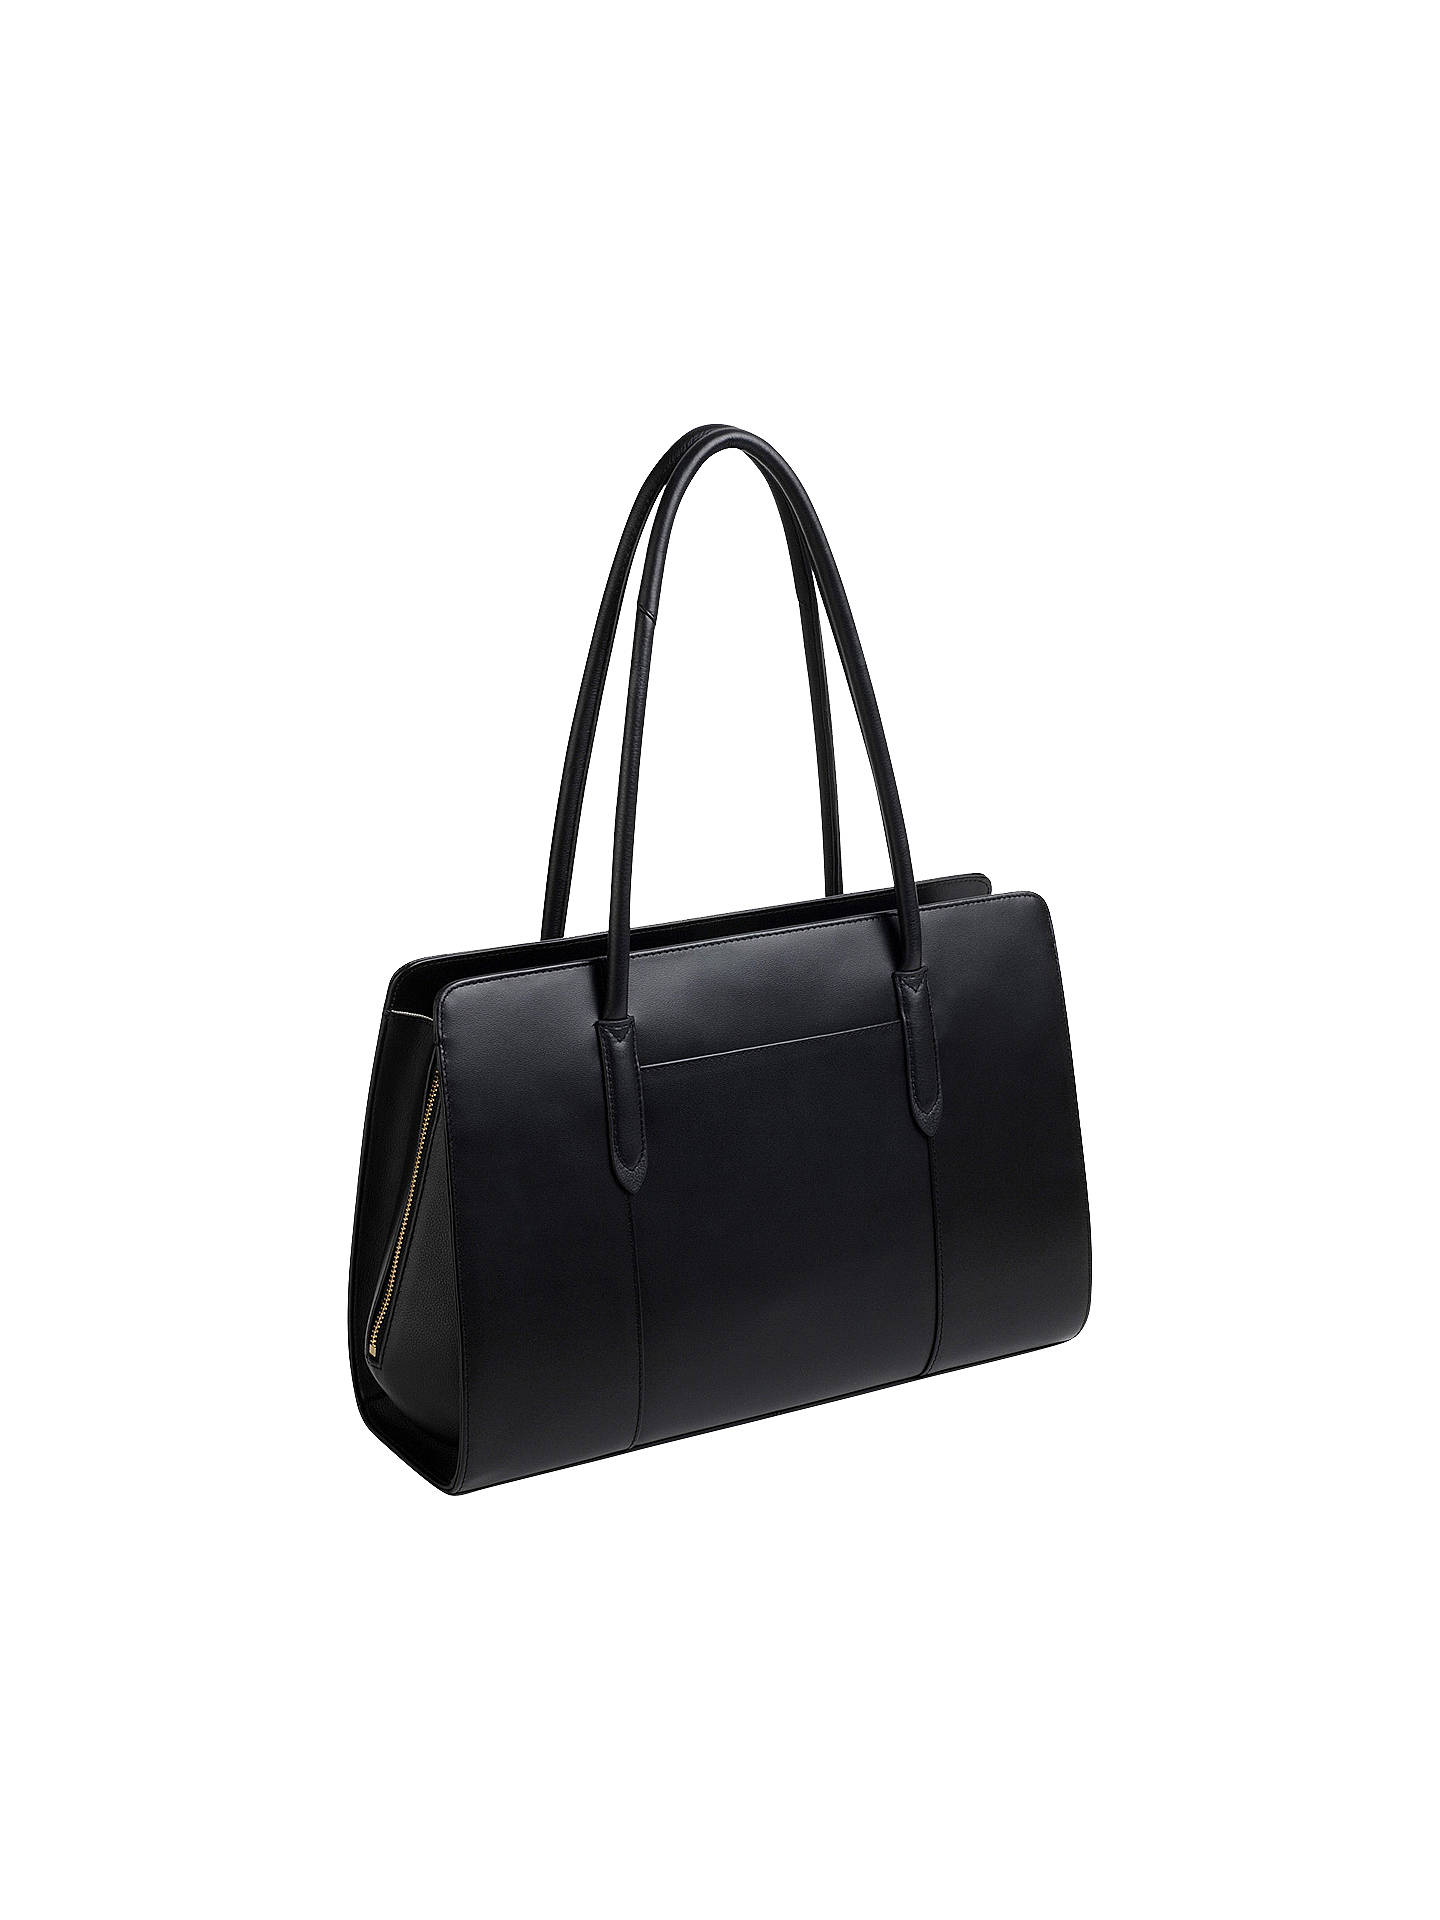 Buy Radley Liverpool Street Leather Large Tote Bag, Black Online at johnlewis.com